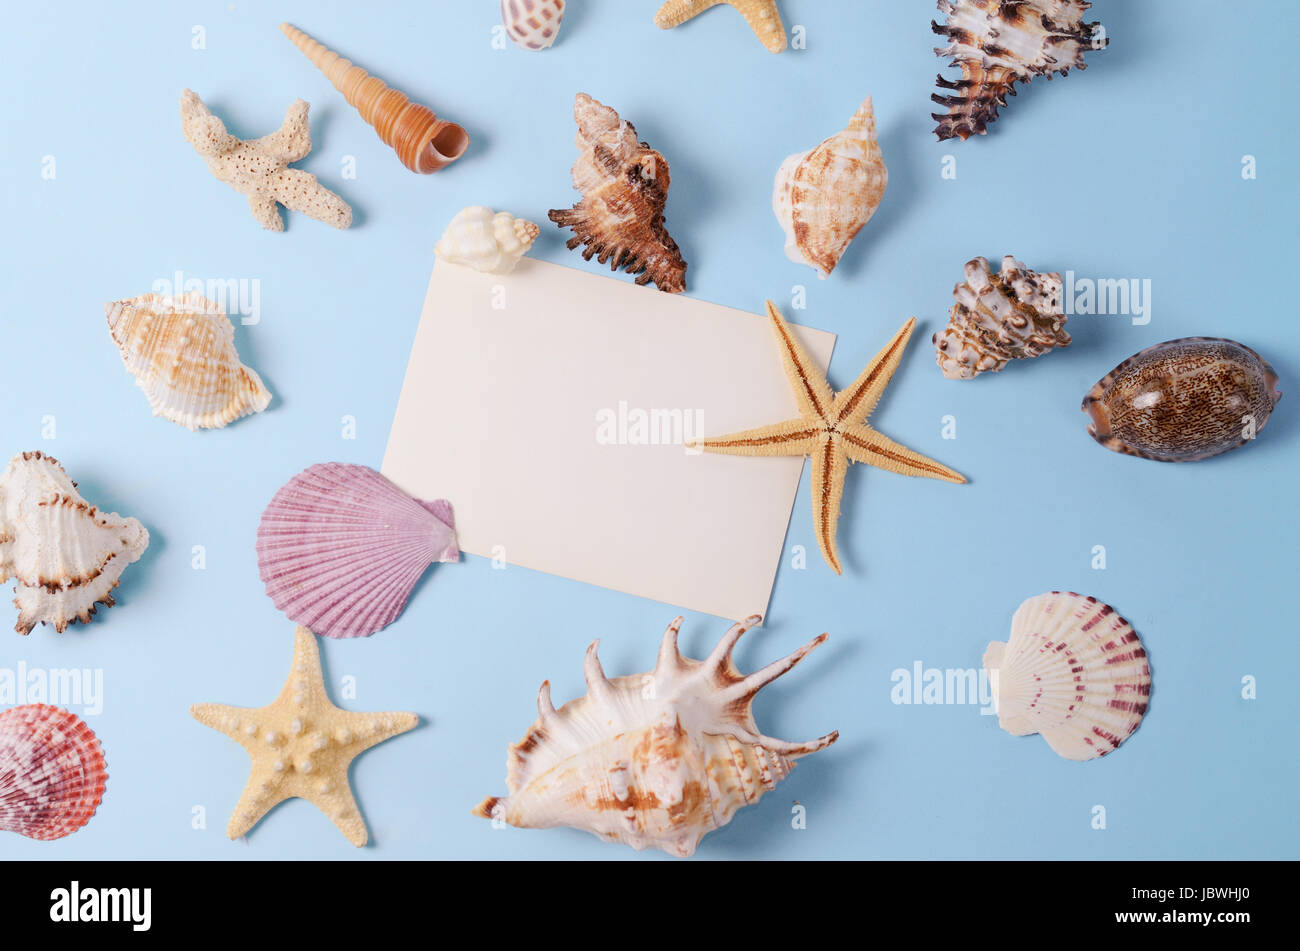 Creative layout made of different colorful seashells and greeting card on a blue background. Minimal style background - Stock Image